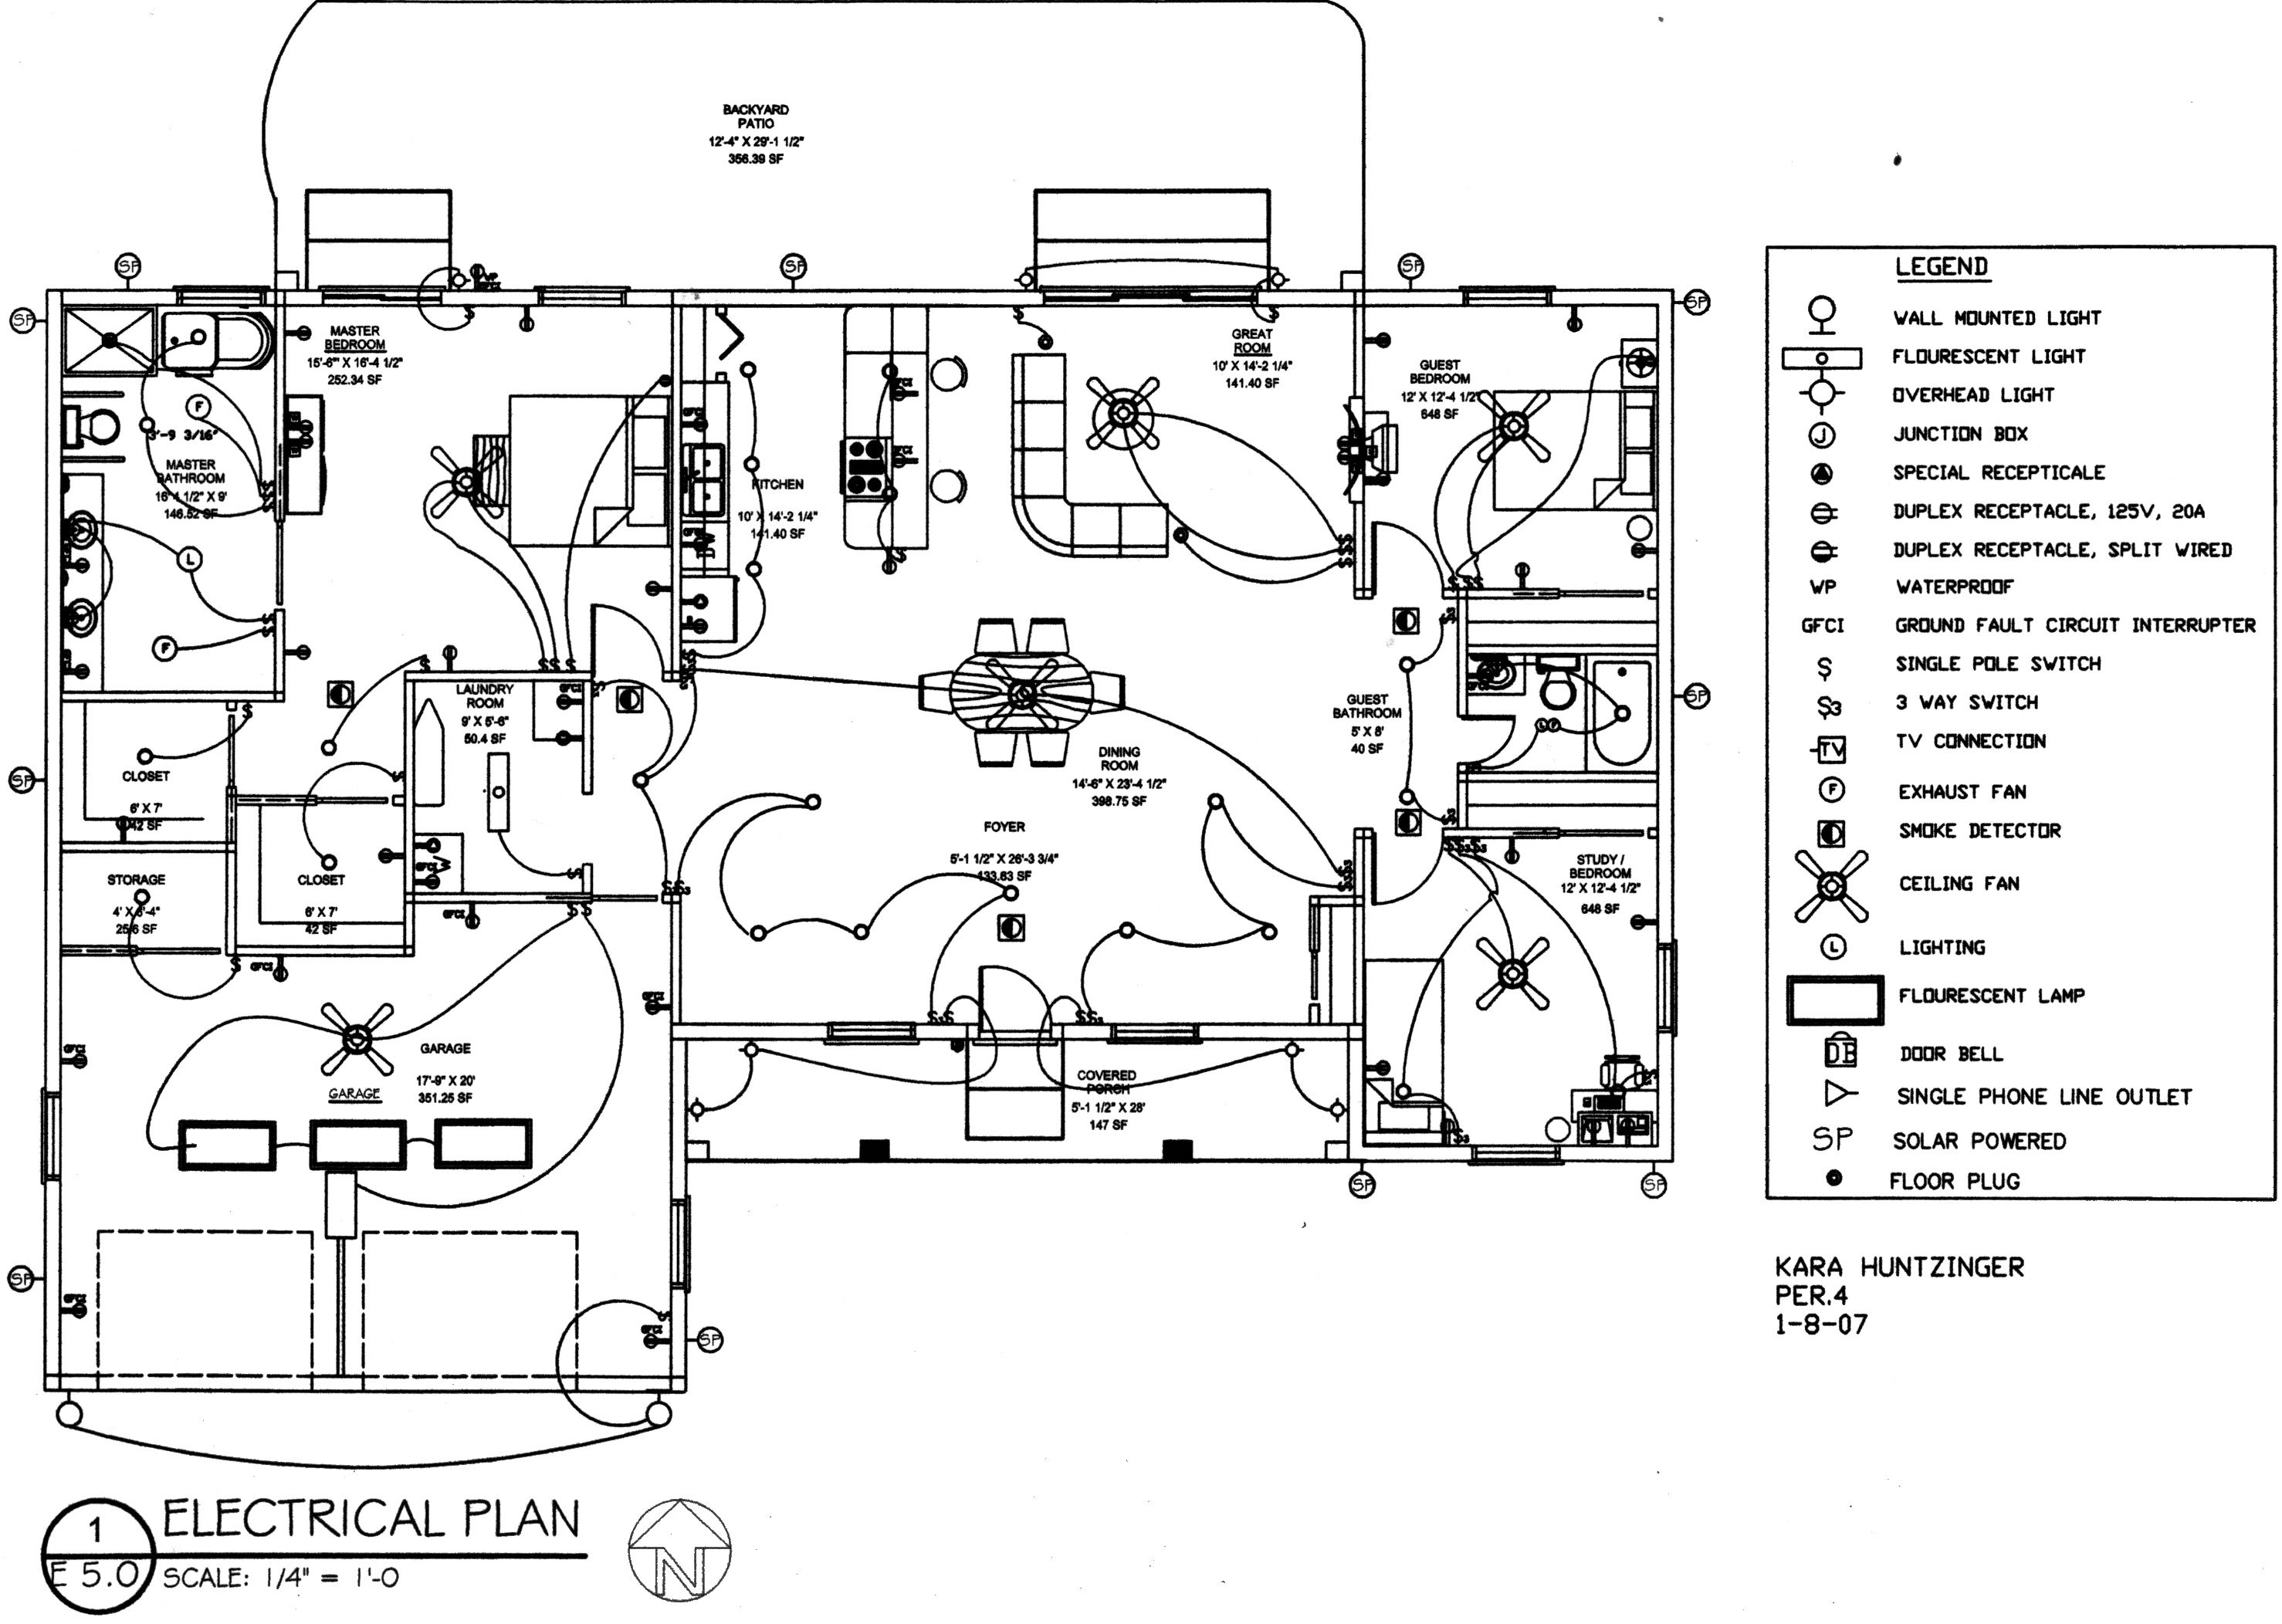 Typical Garage Electrical Drawing